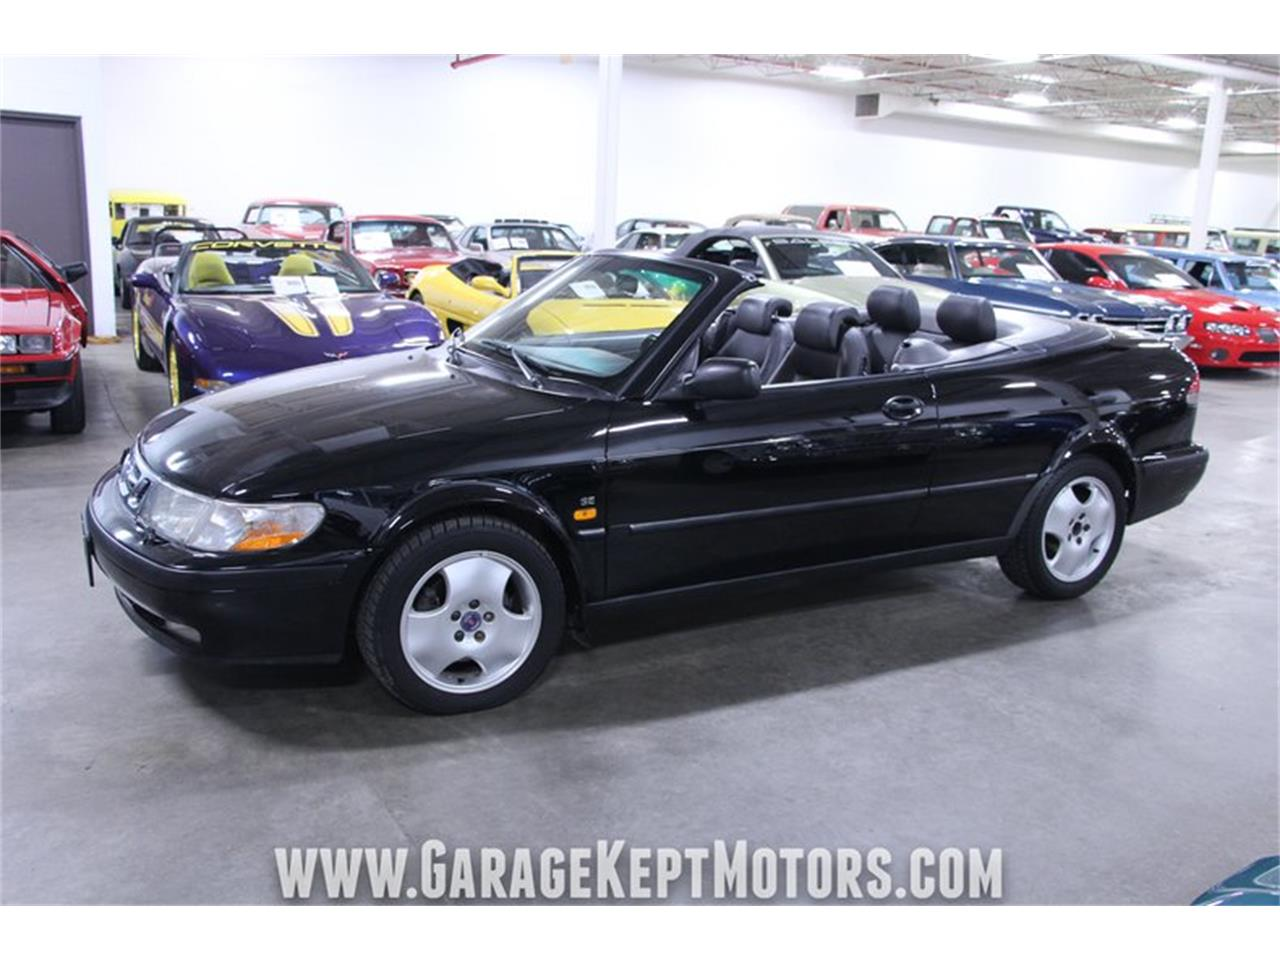 1999 Saab 9-3 for sale in Grand Rapids, MI – photo 71